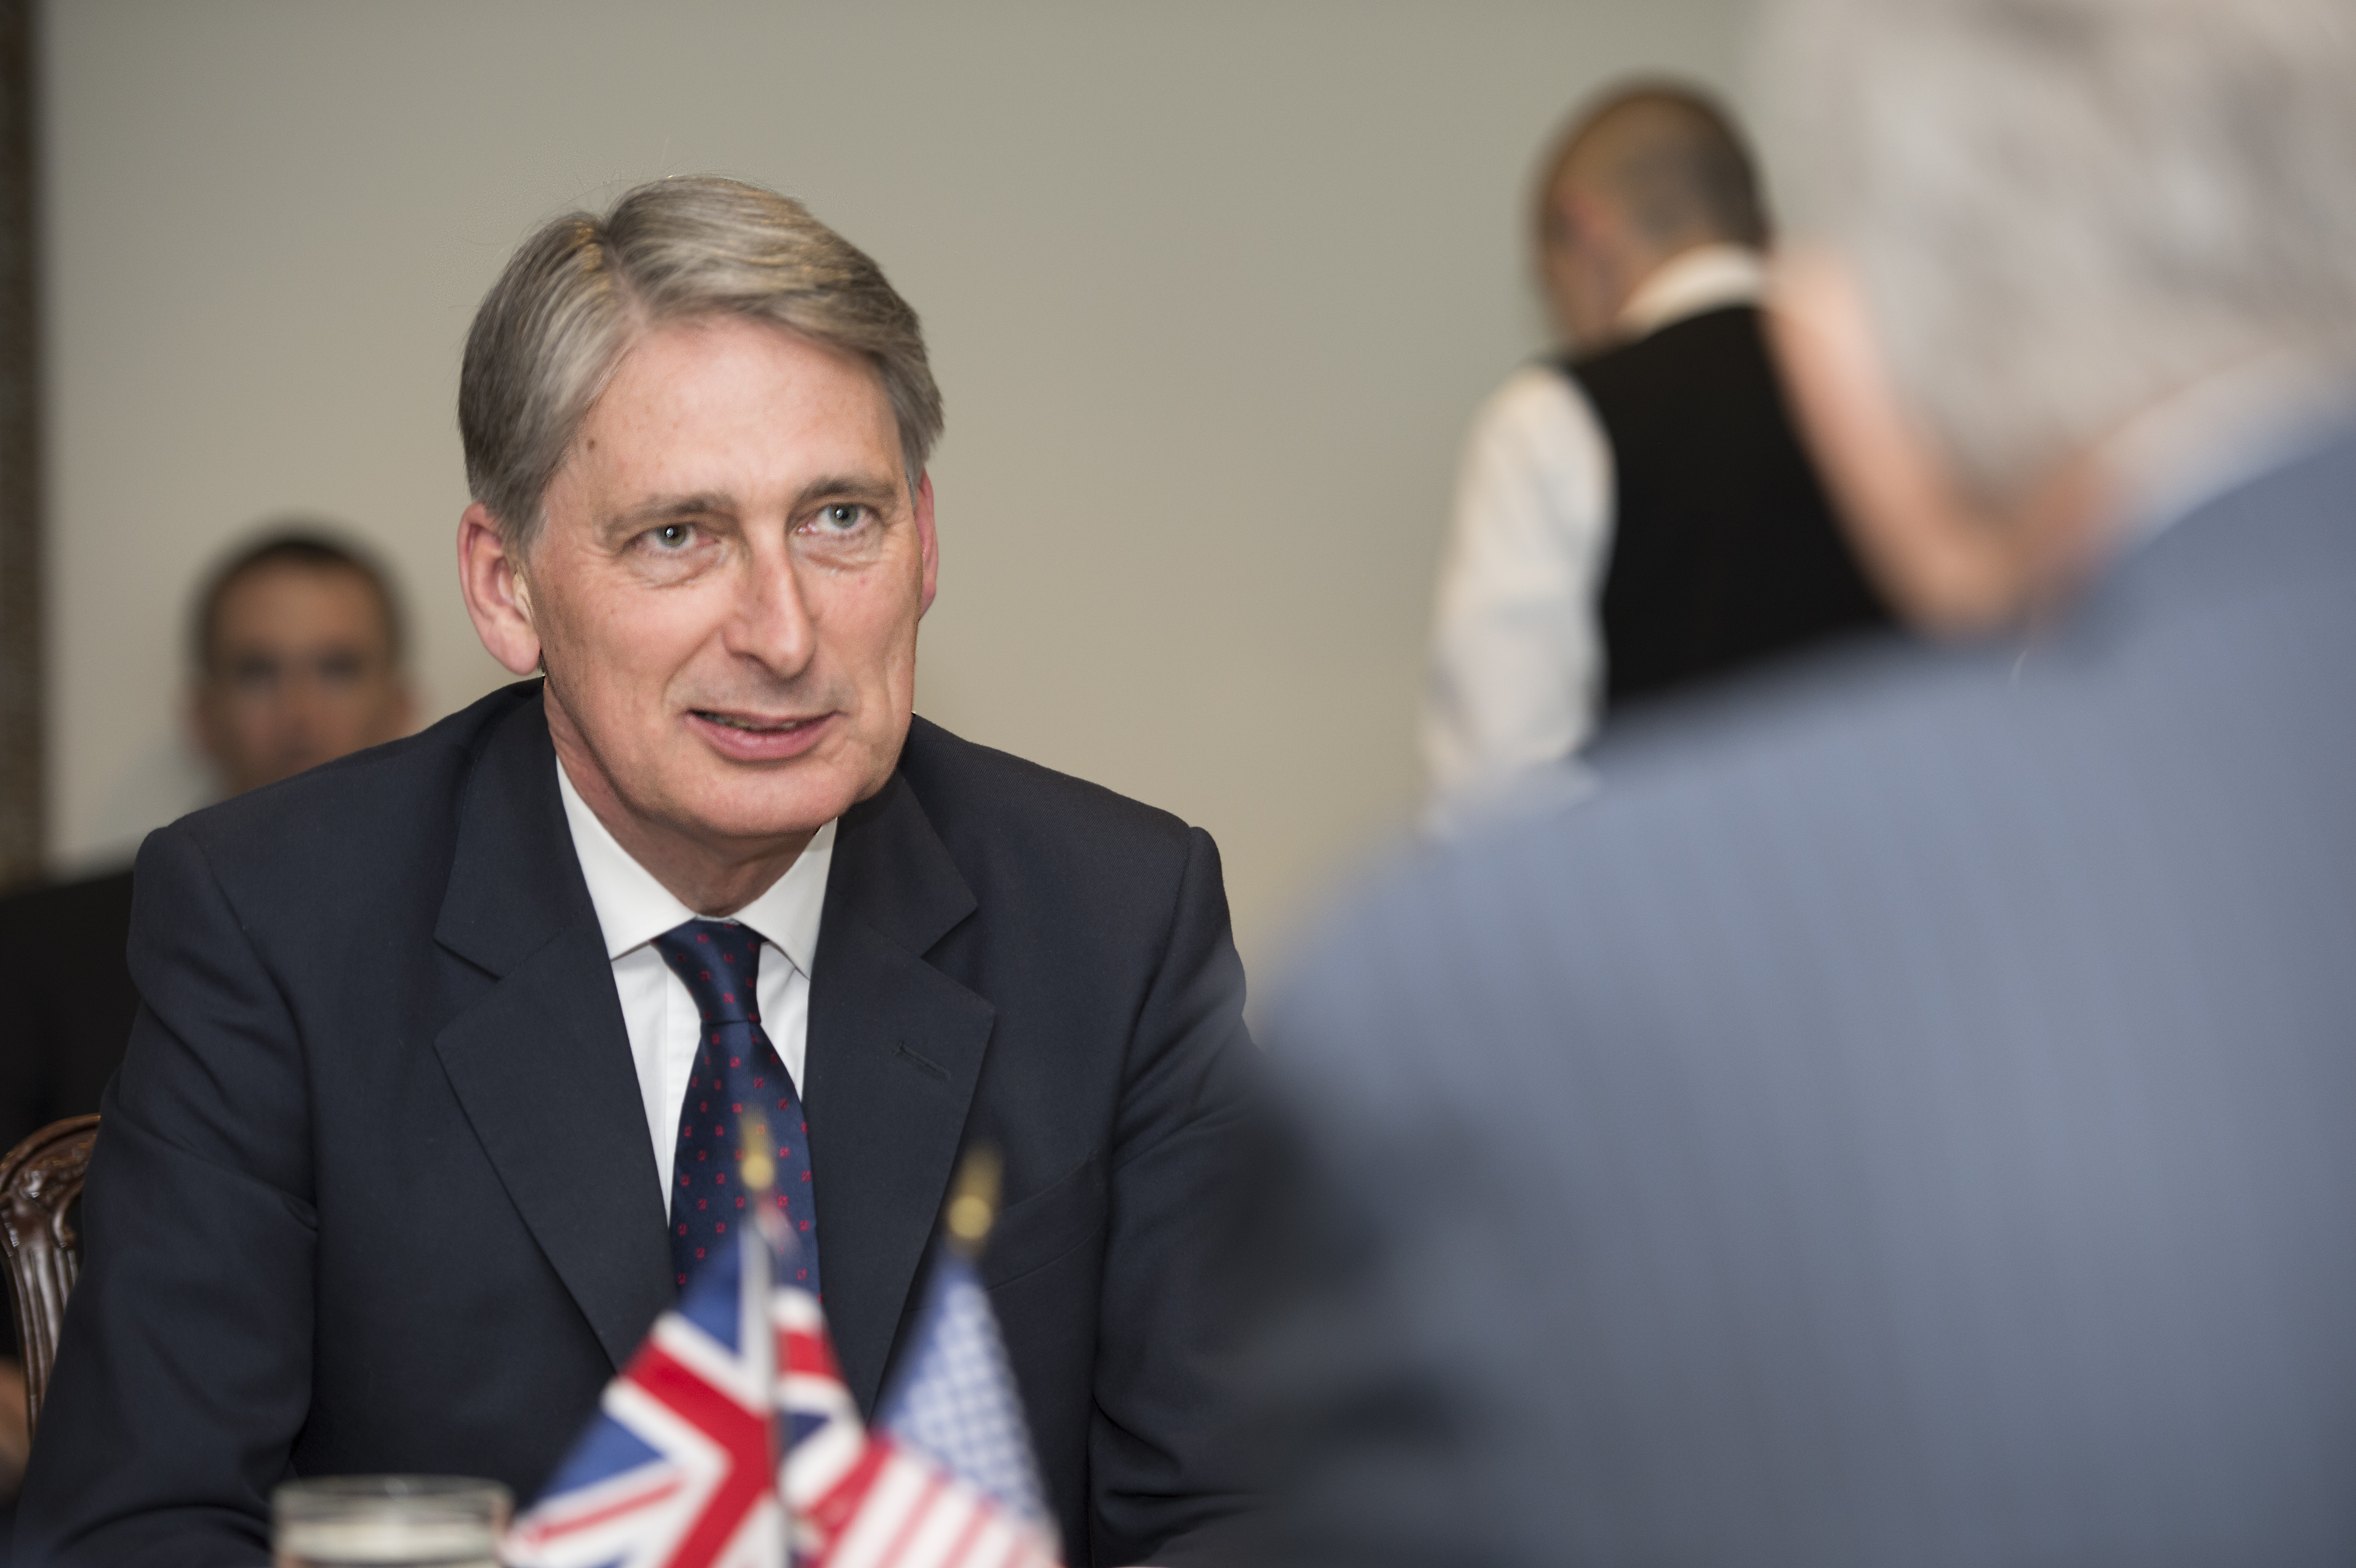 Philip Hammond named chancellor of the Exchequer as George Osborne abandons Theresa May